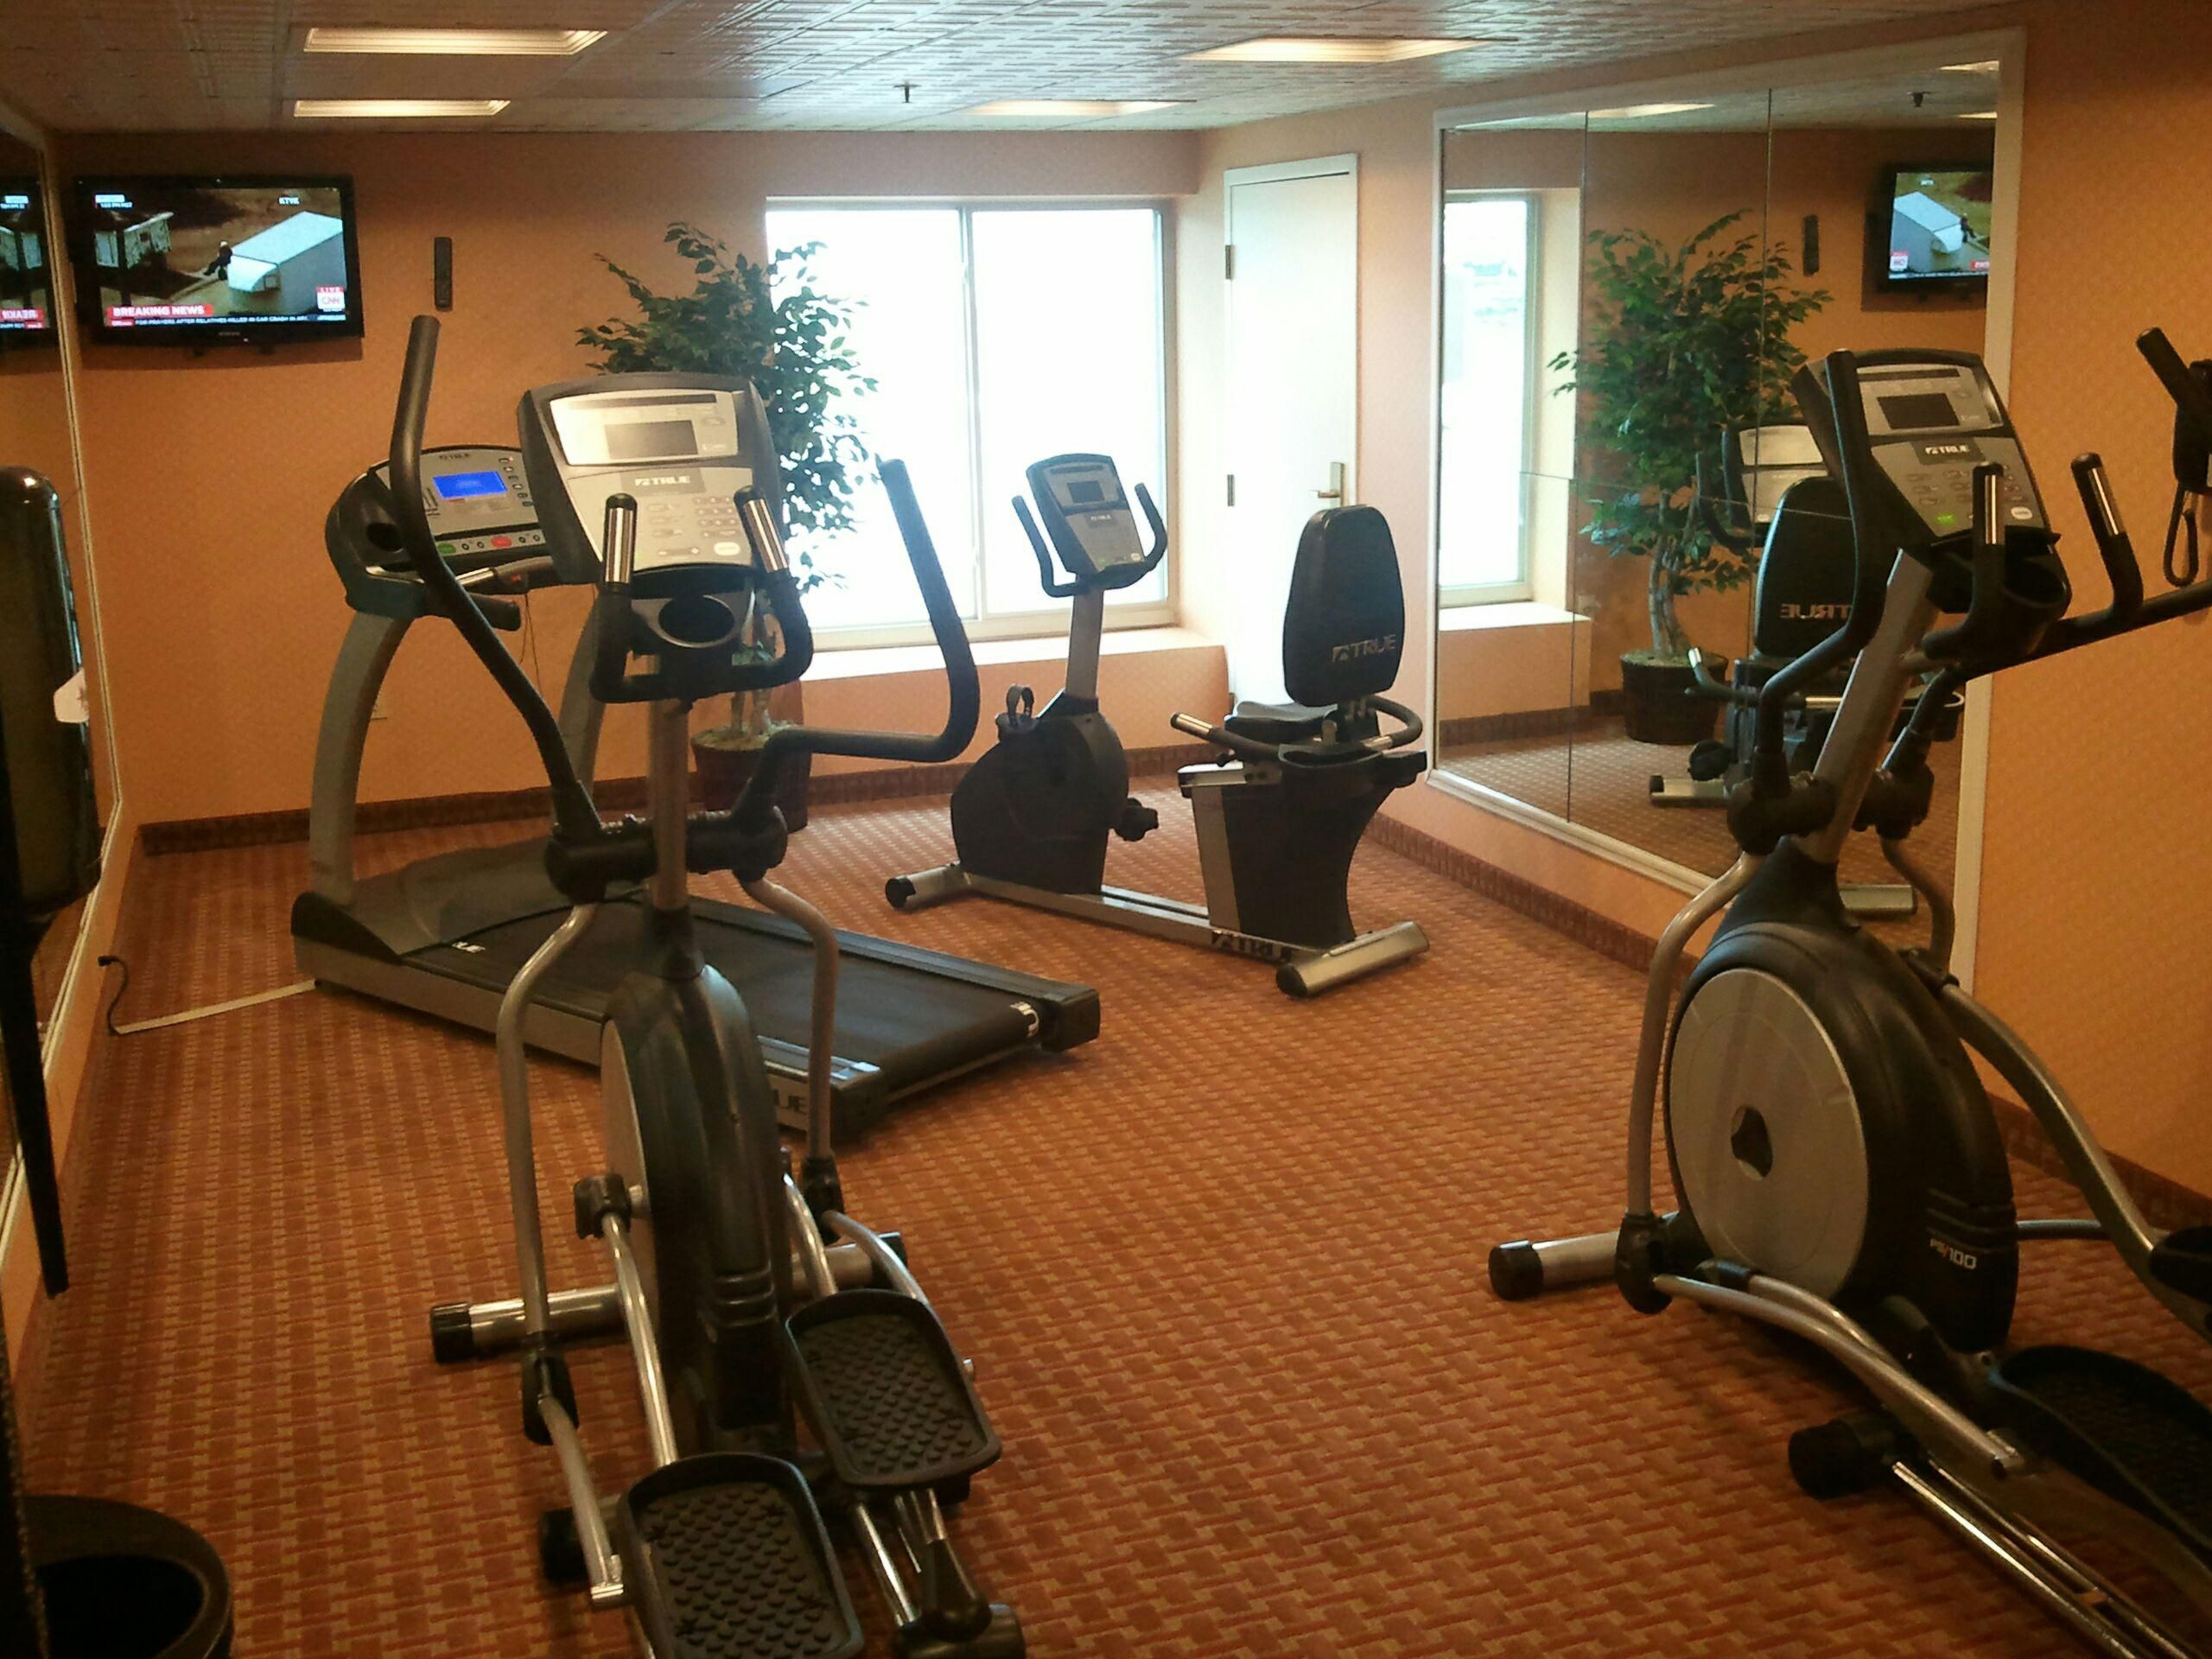 Spacious Fitness Center With LCD TV